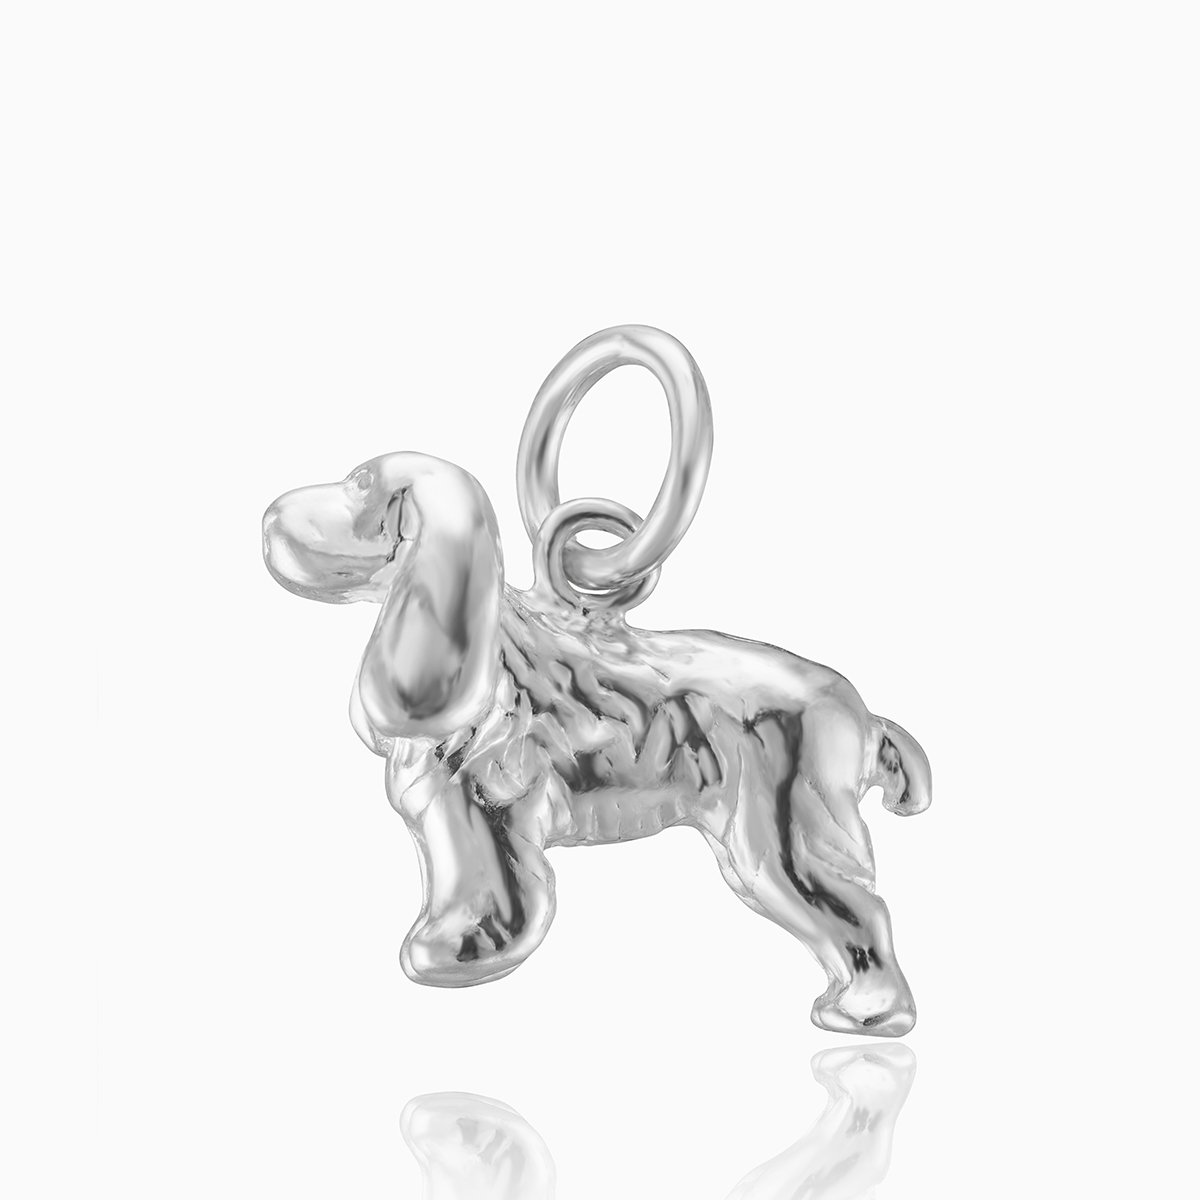 Product title: Silver Dog Charm, product type: Charm